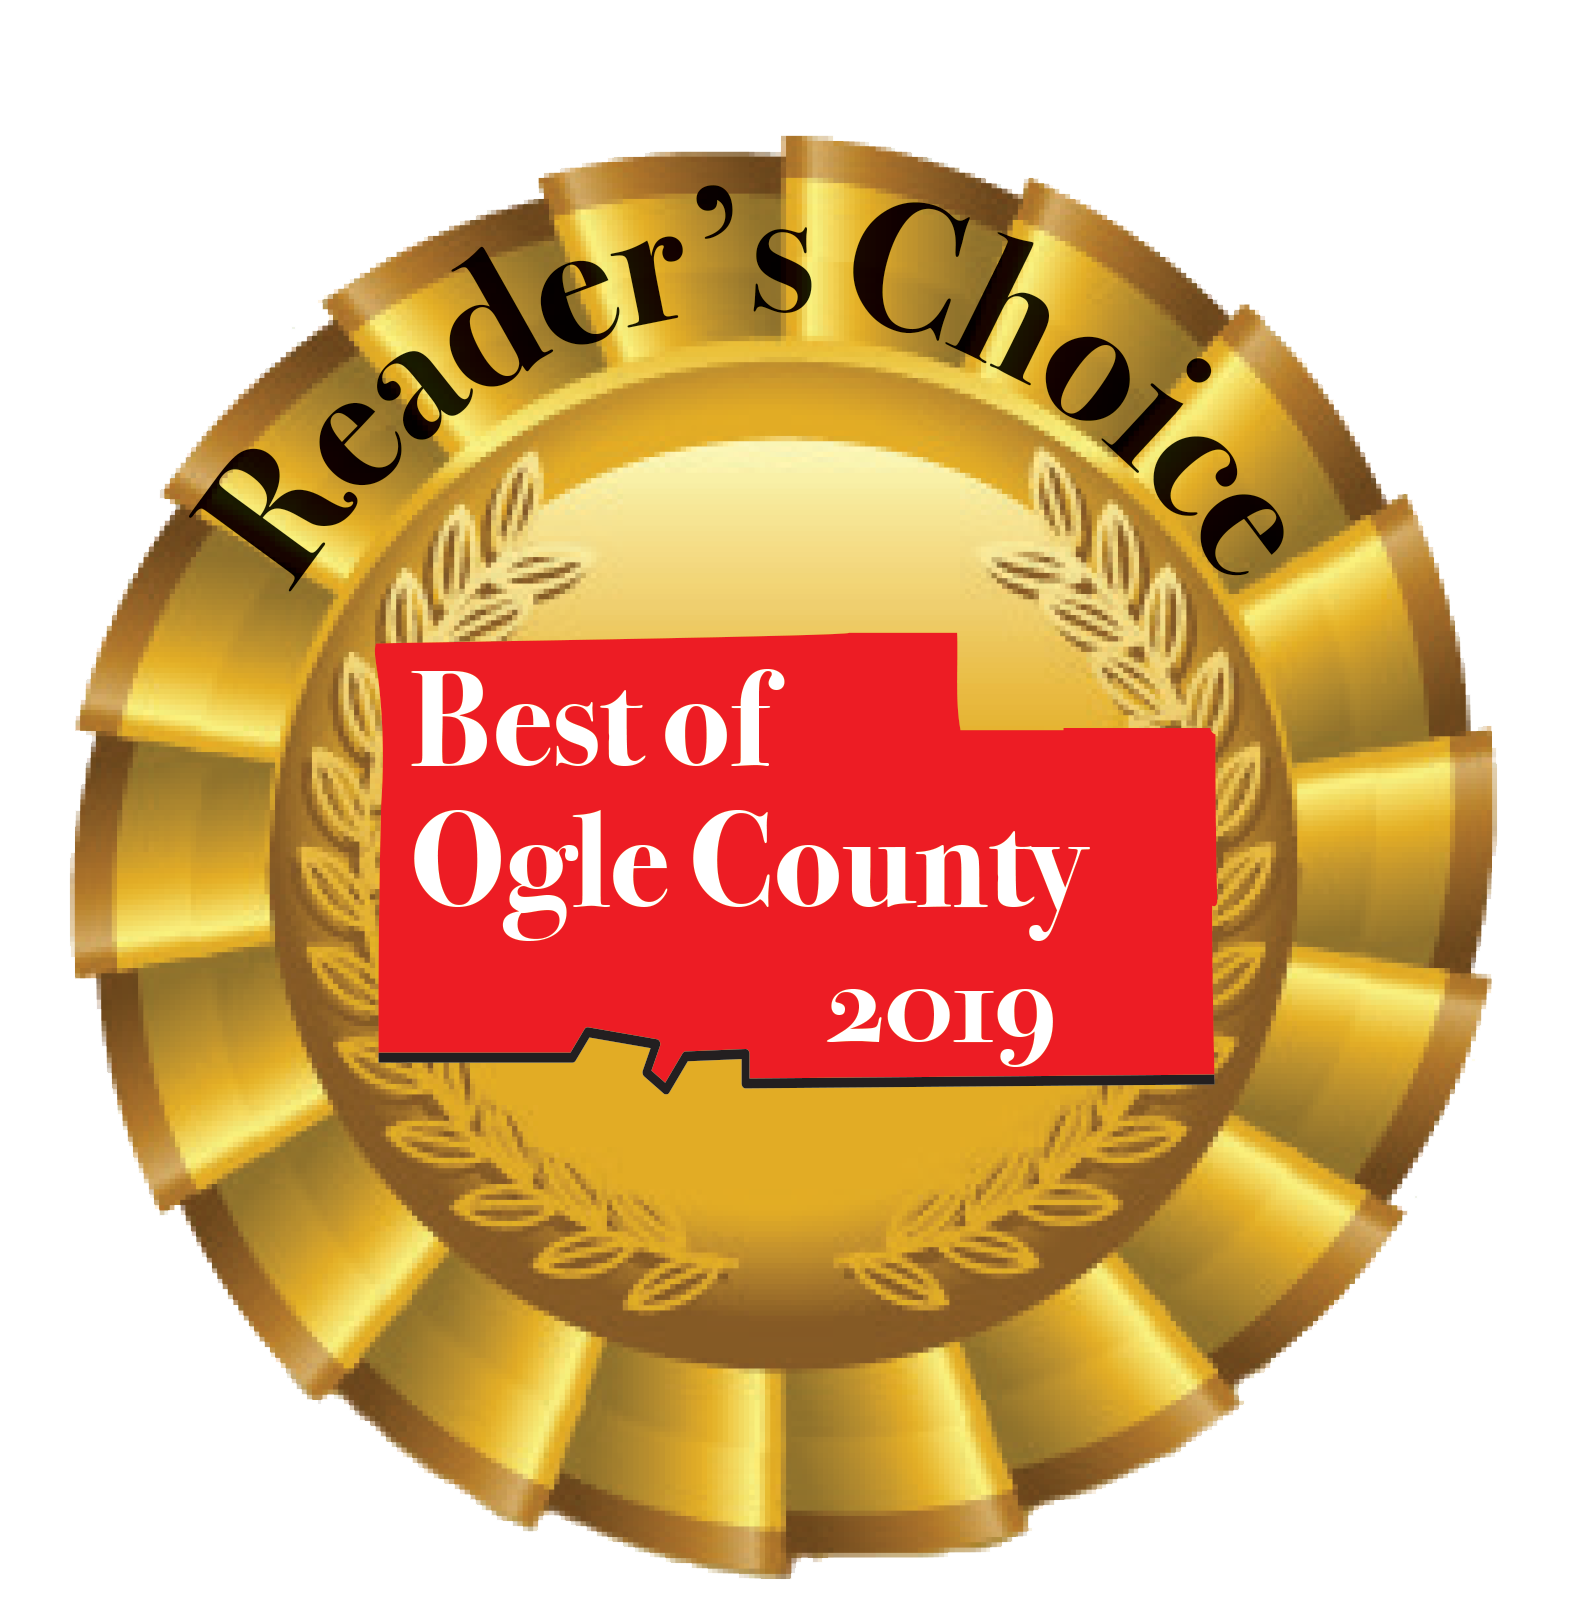 Best PT Ogle County Award 2019 Seal